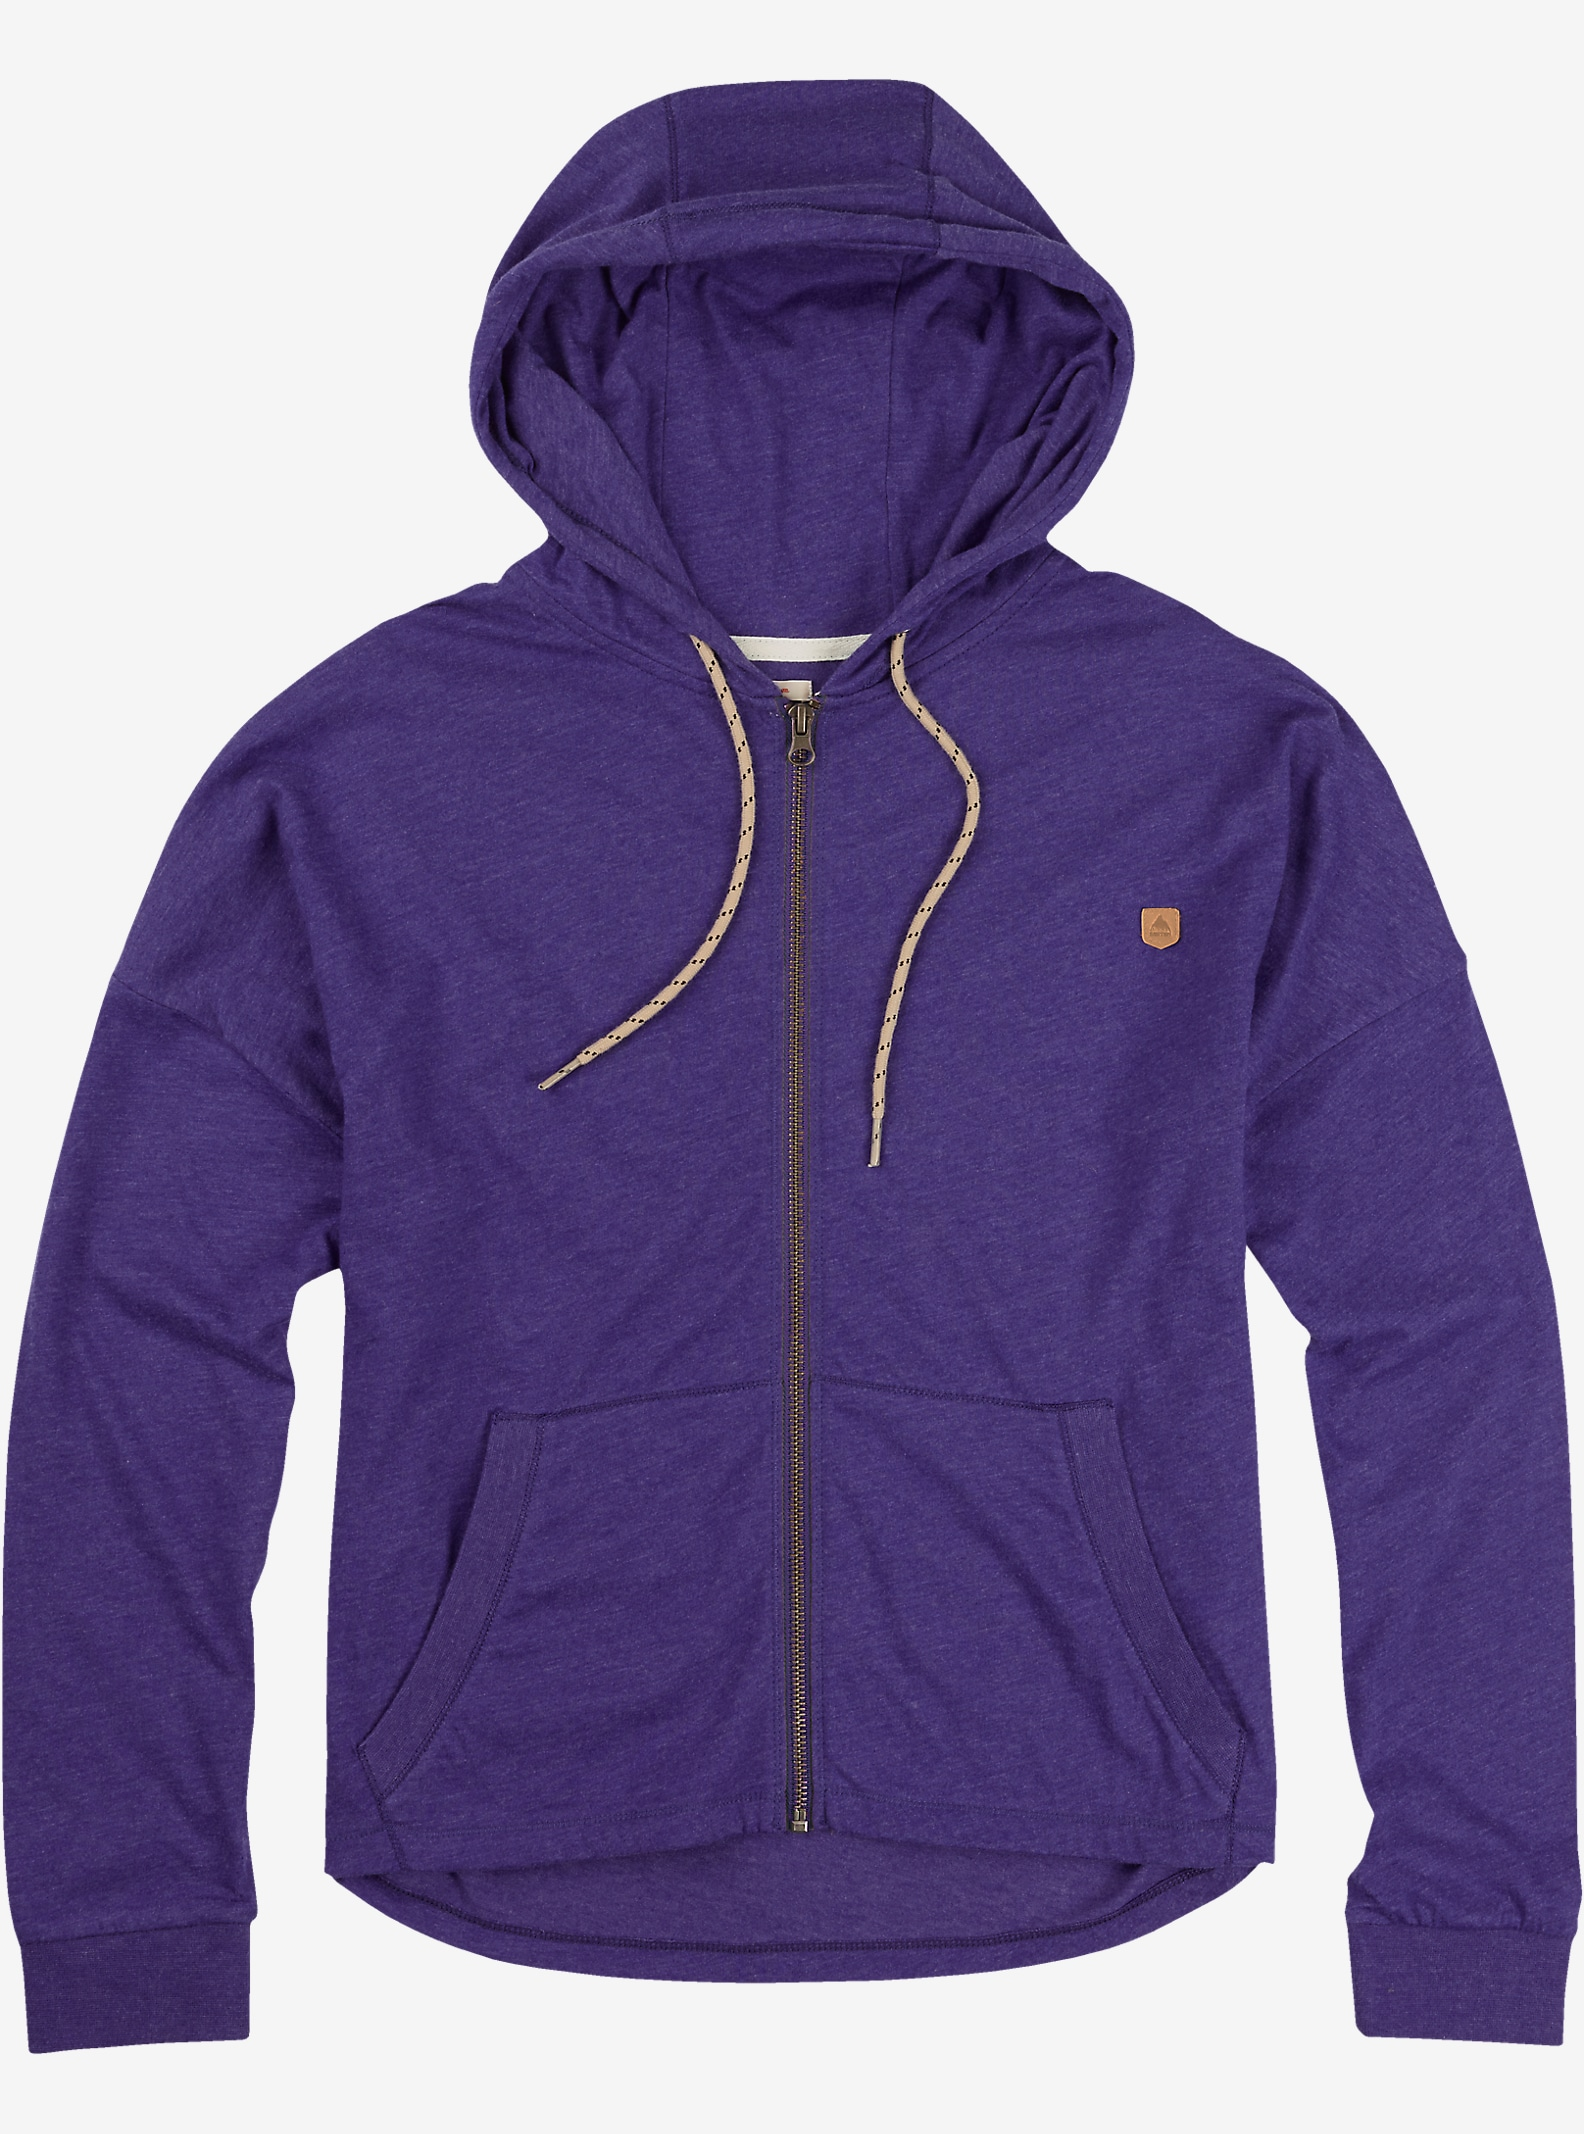 Burton Favorite Full-Zip Hoodie shown in Purple Heather